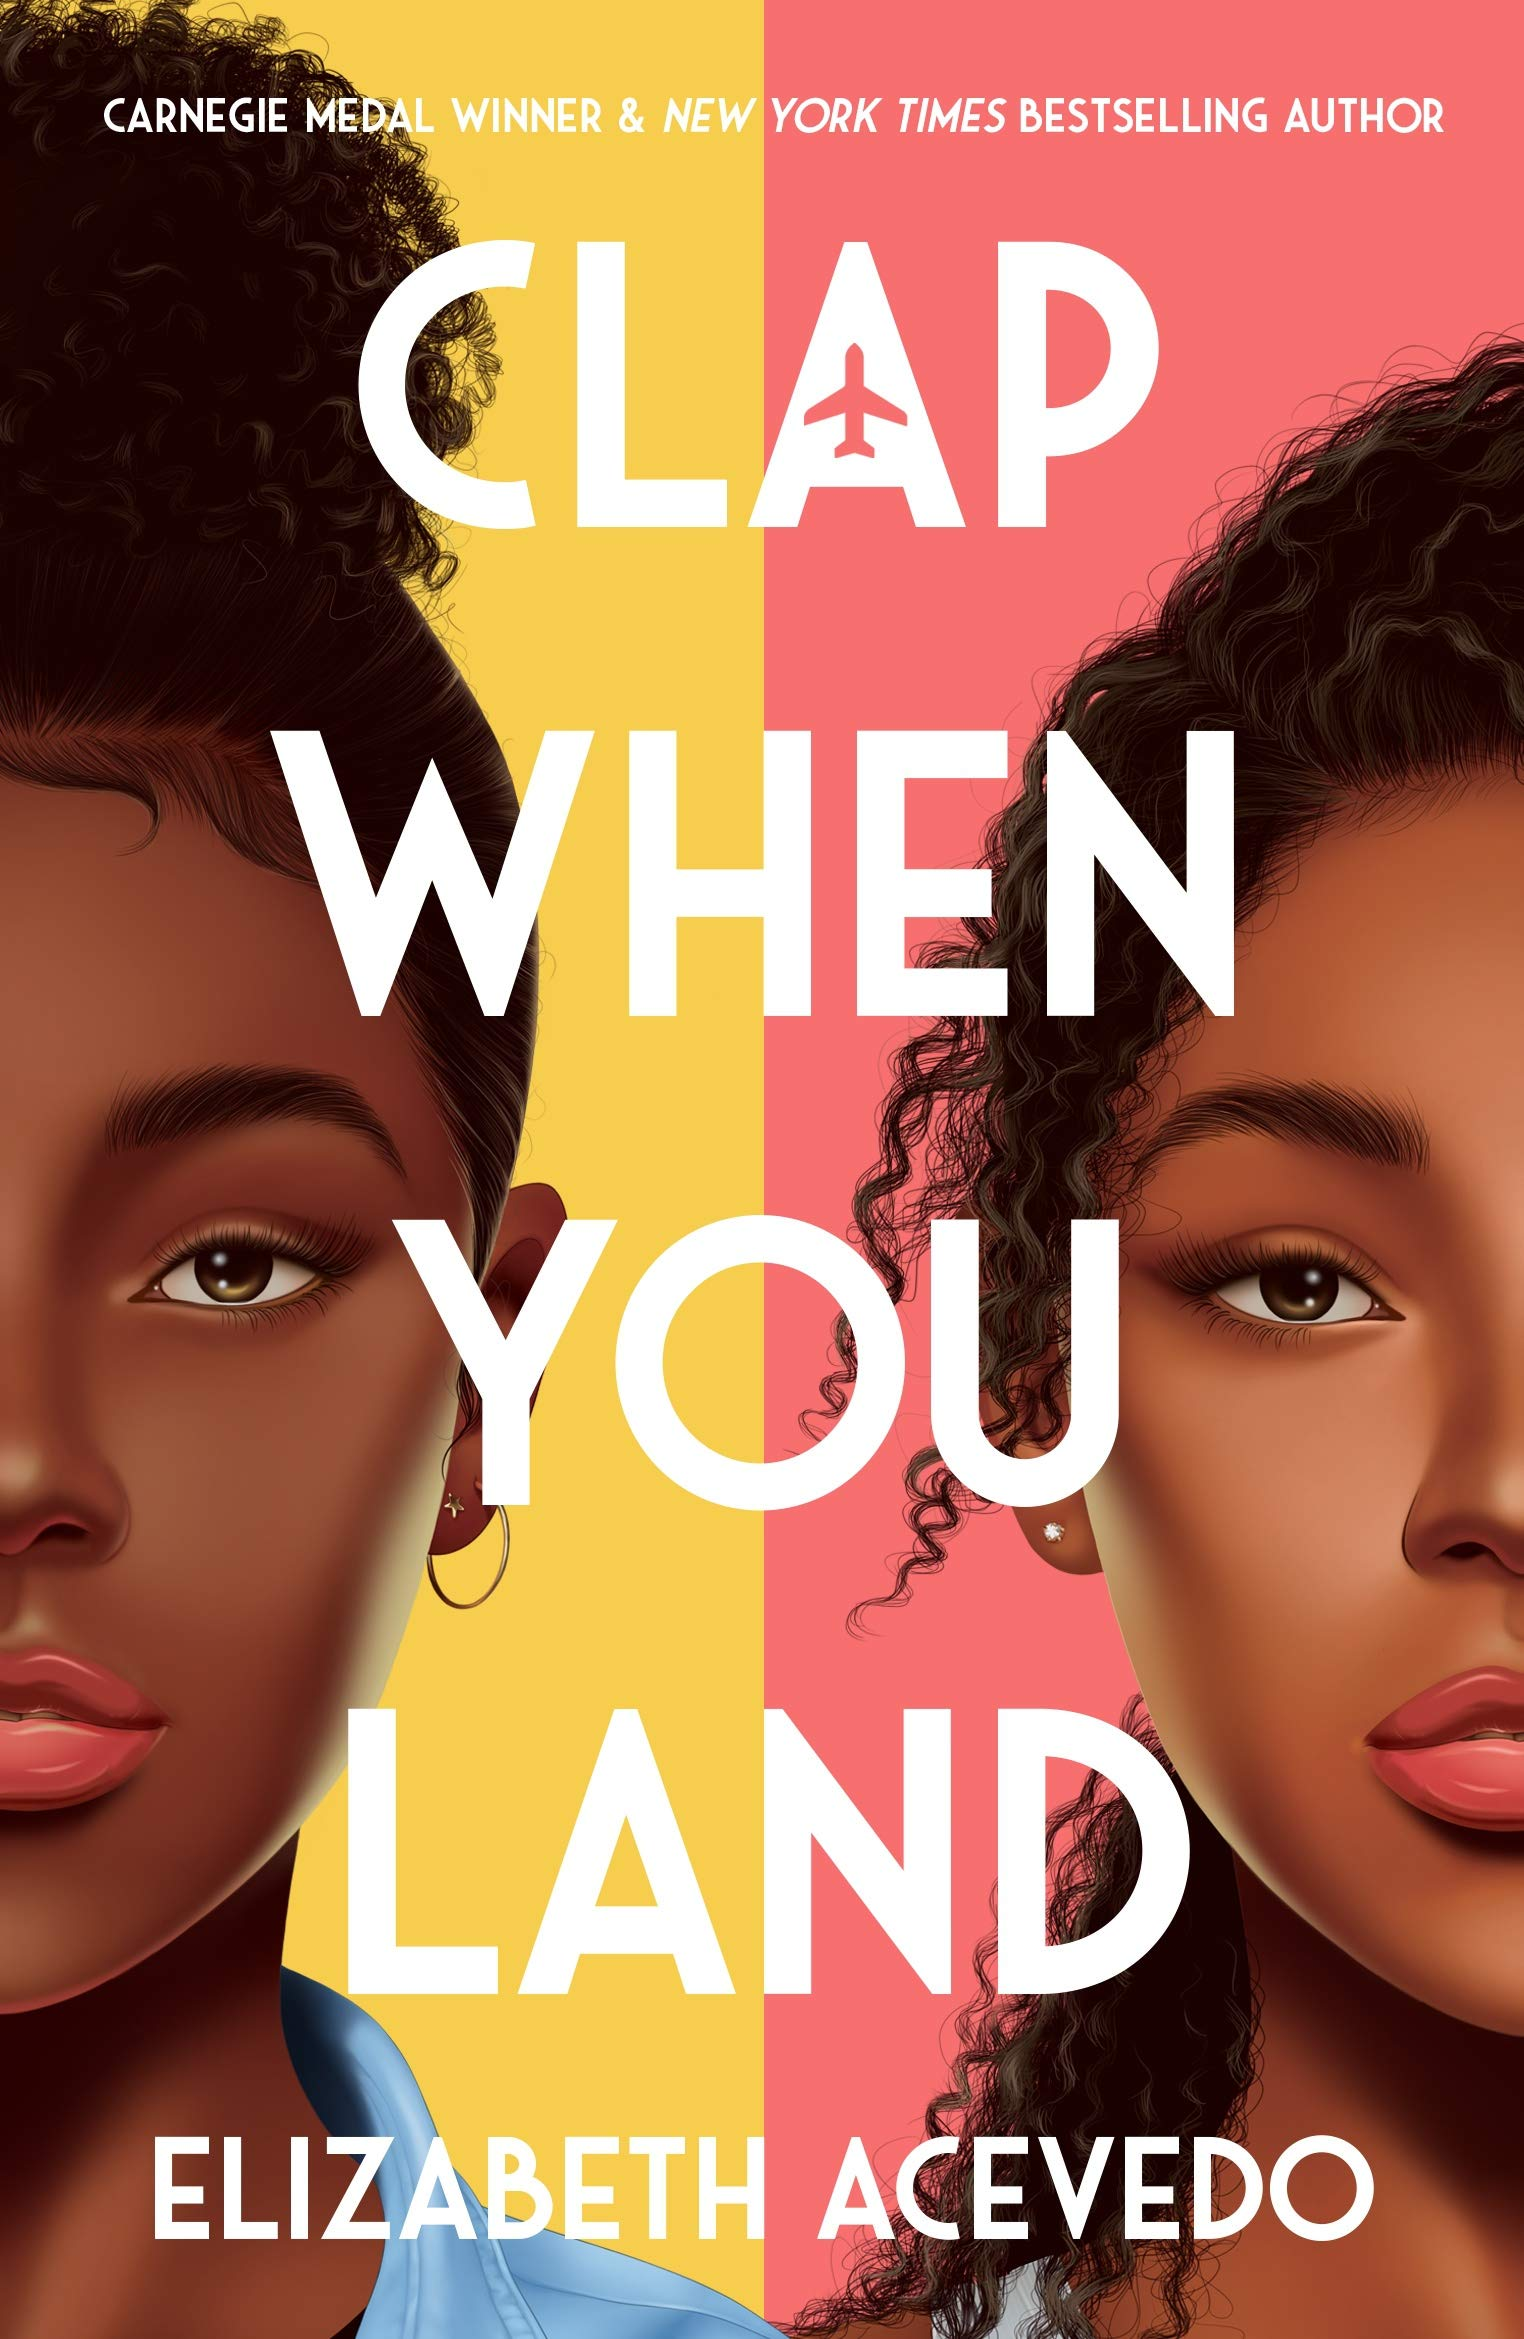 Clap When You Land: Amazon.co.uk: Acevedo, Elizabeth: Books